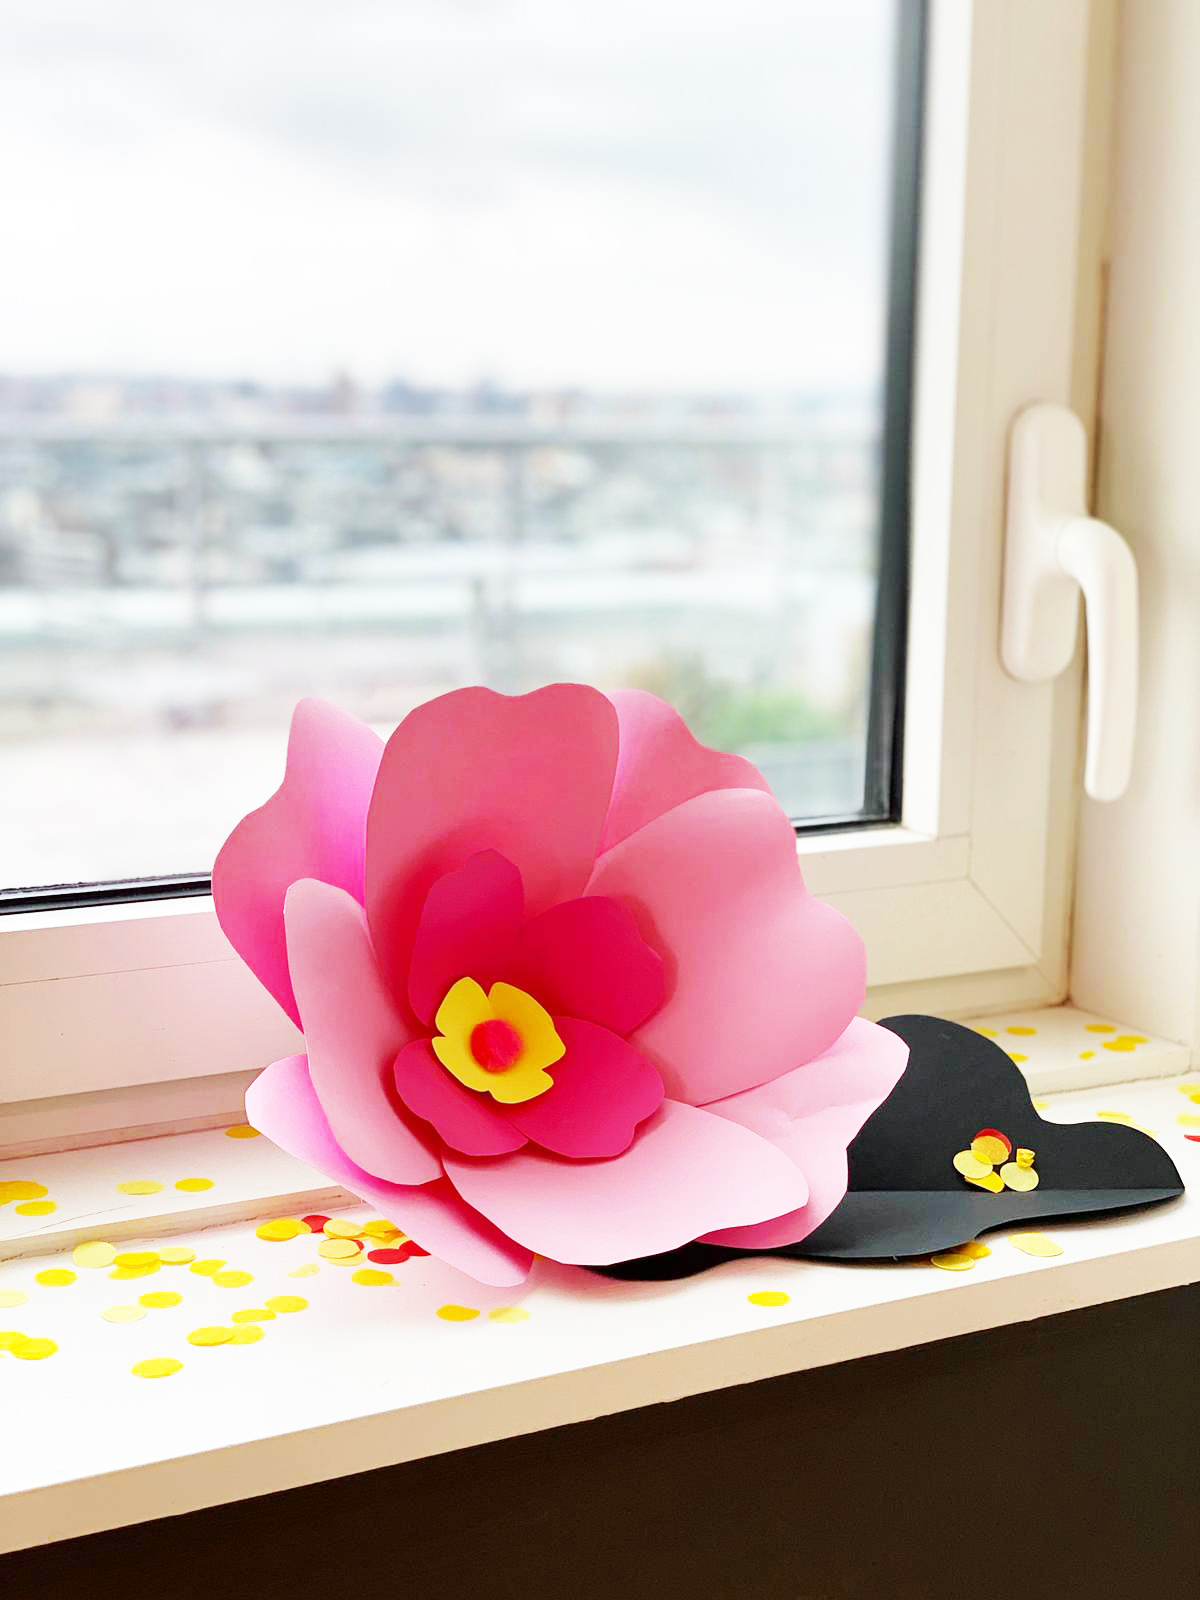 No need to hang up on a wall, the flowers sit pretty just about anywhere!